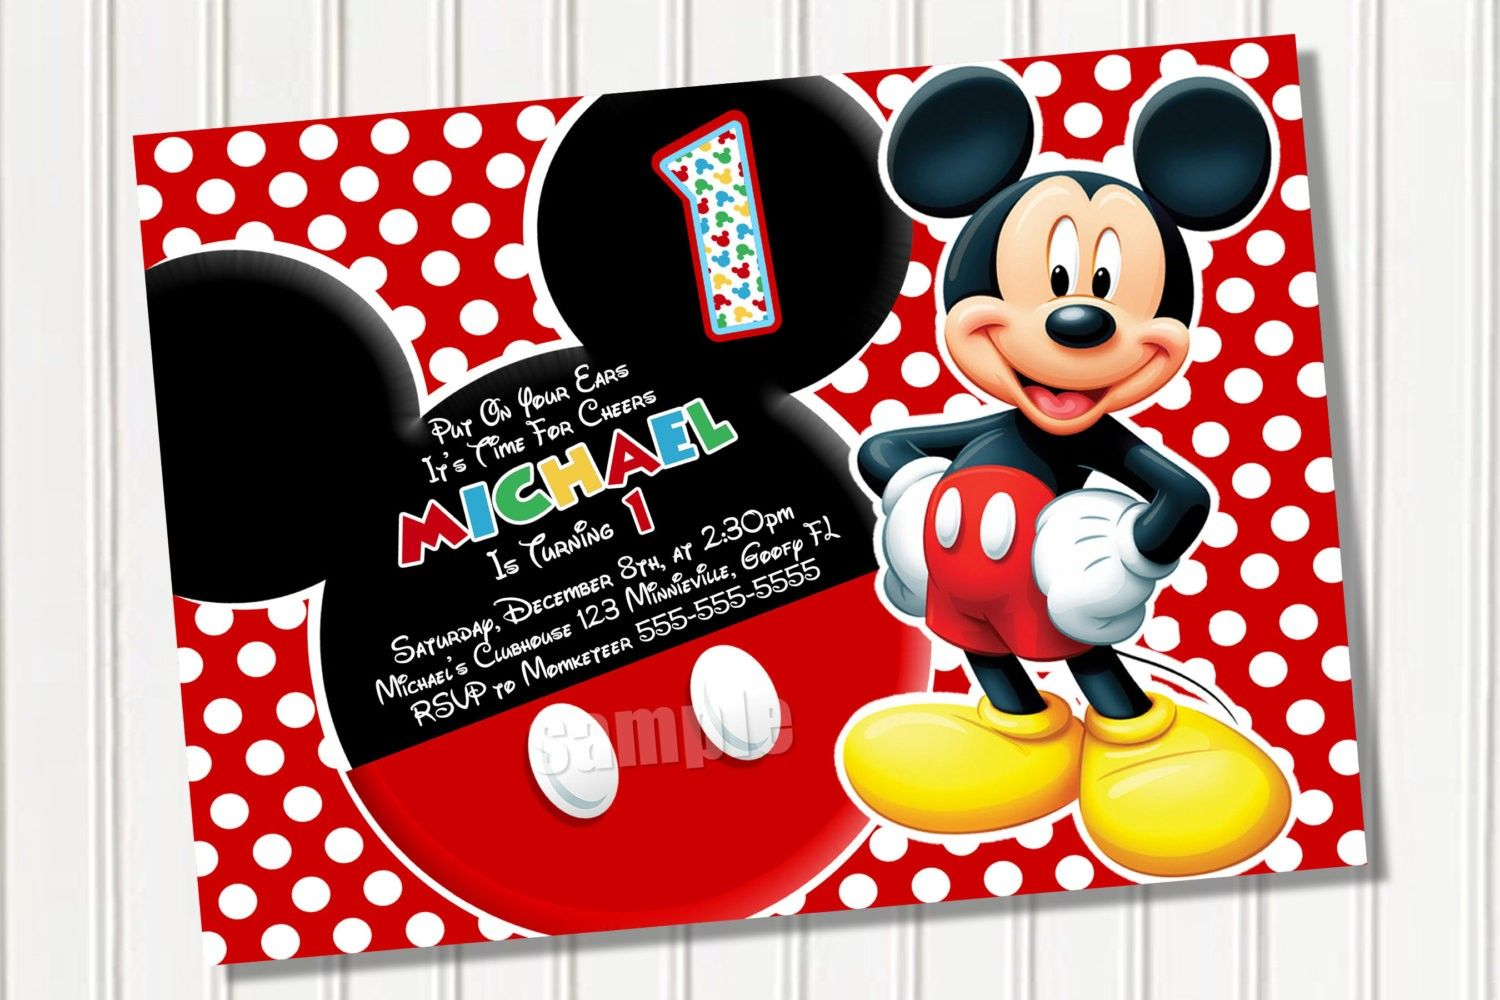 Mickey Mouse Invitation Template Awesome Mickey Mouse Party Invitation  Template With Red Polka Dot .